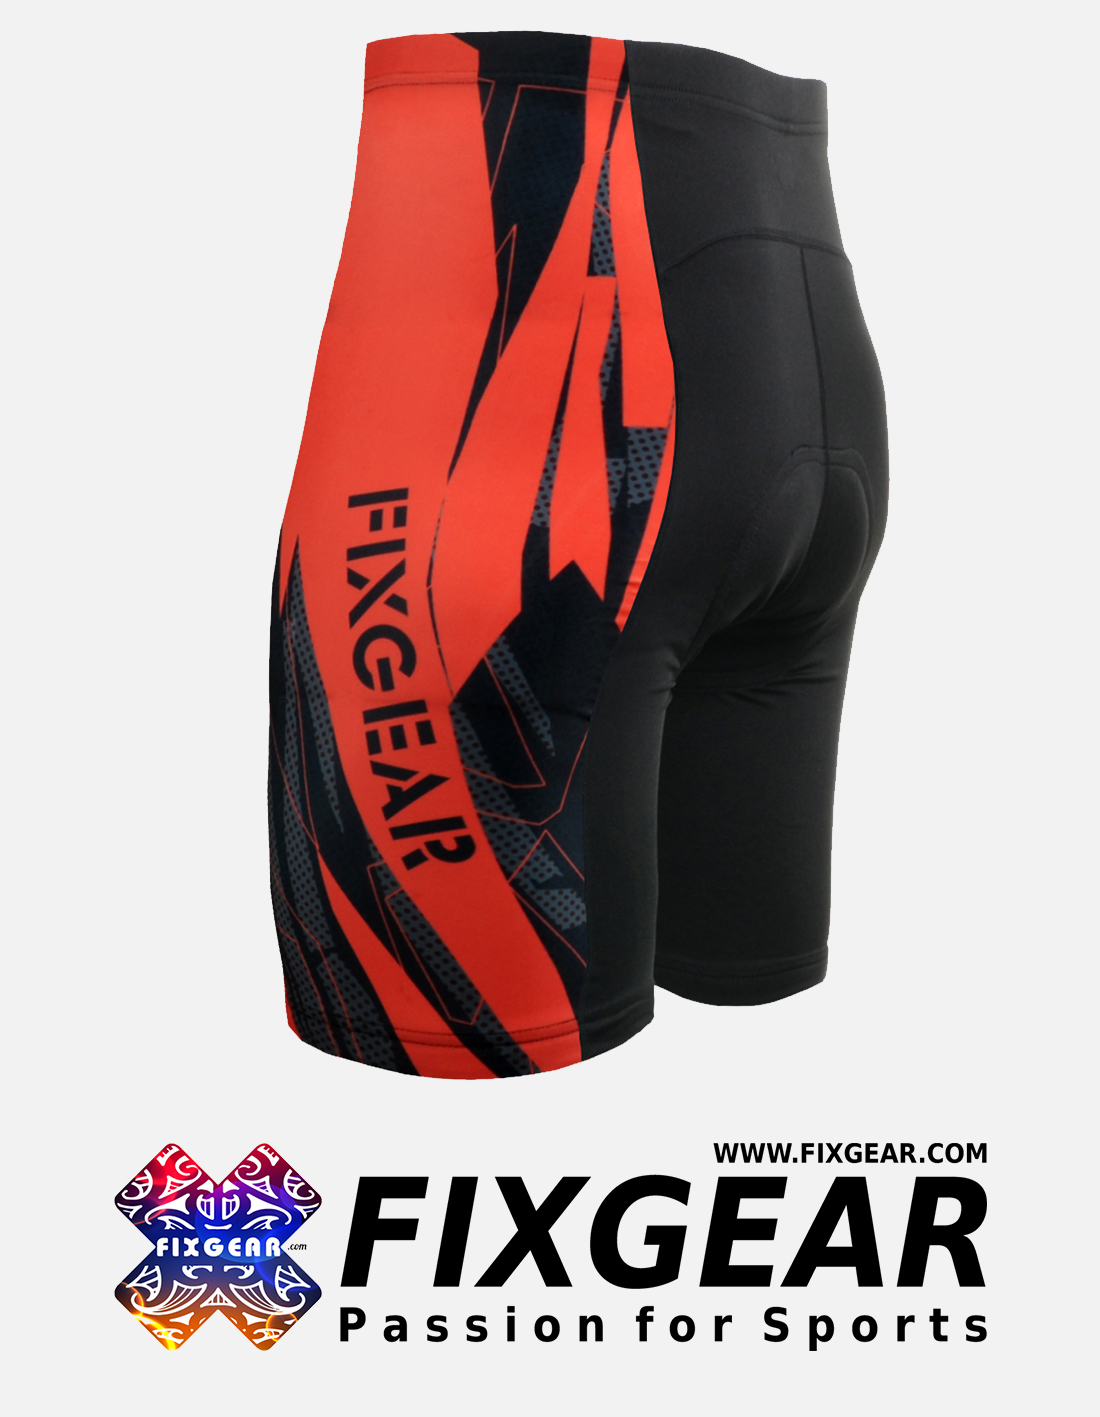 FIXGEAR ST-68 Men's Cycling Cycling Padded Shorts